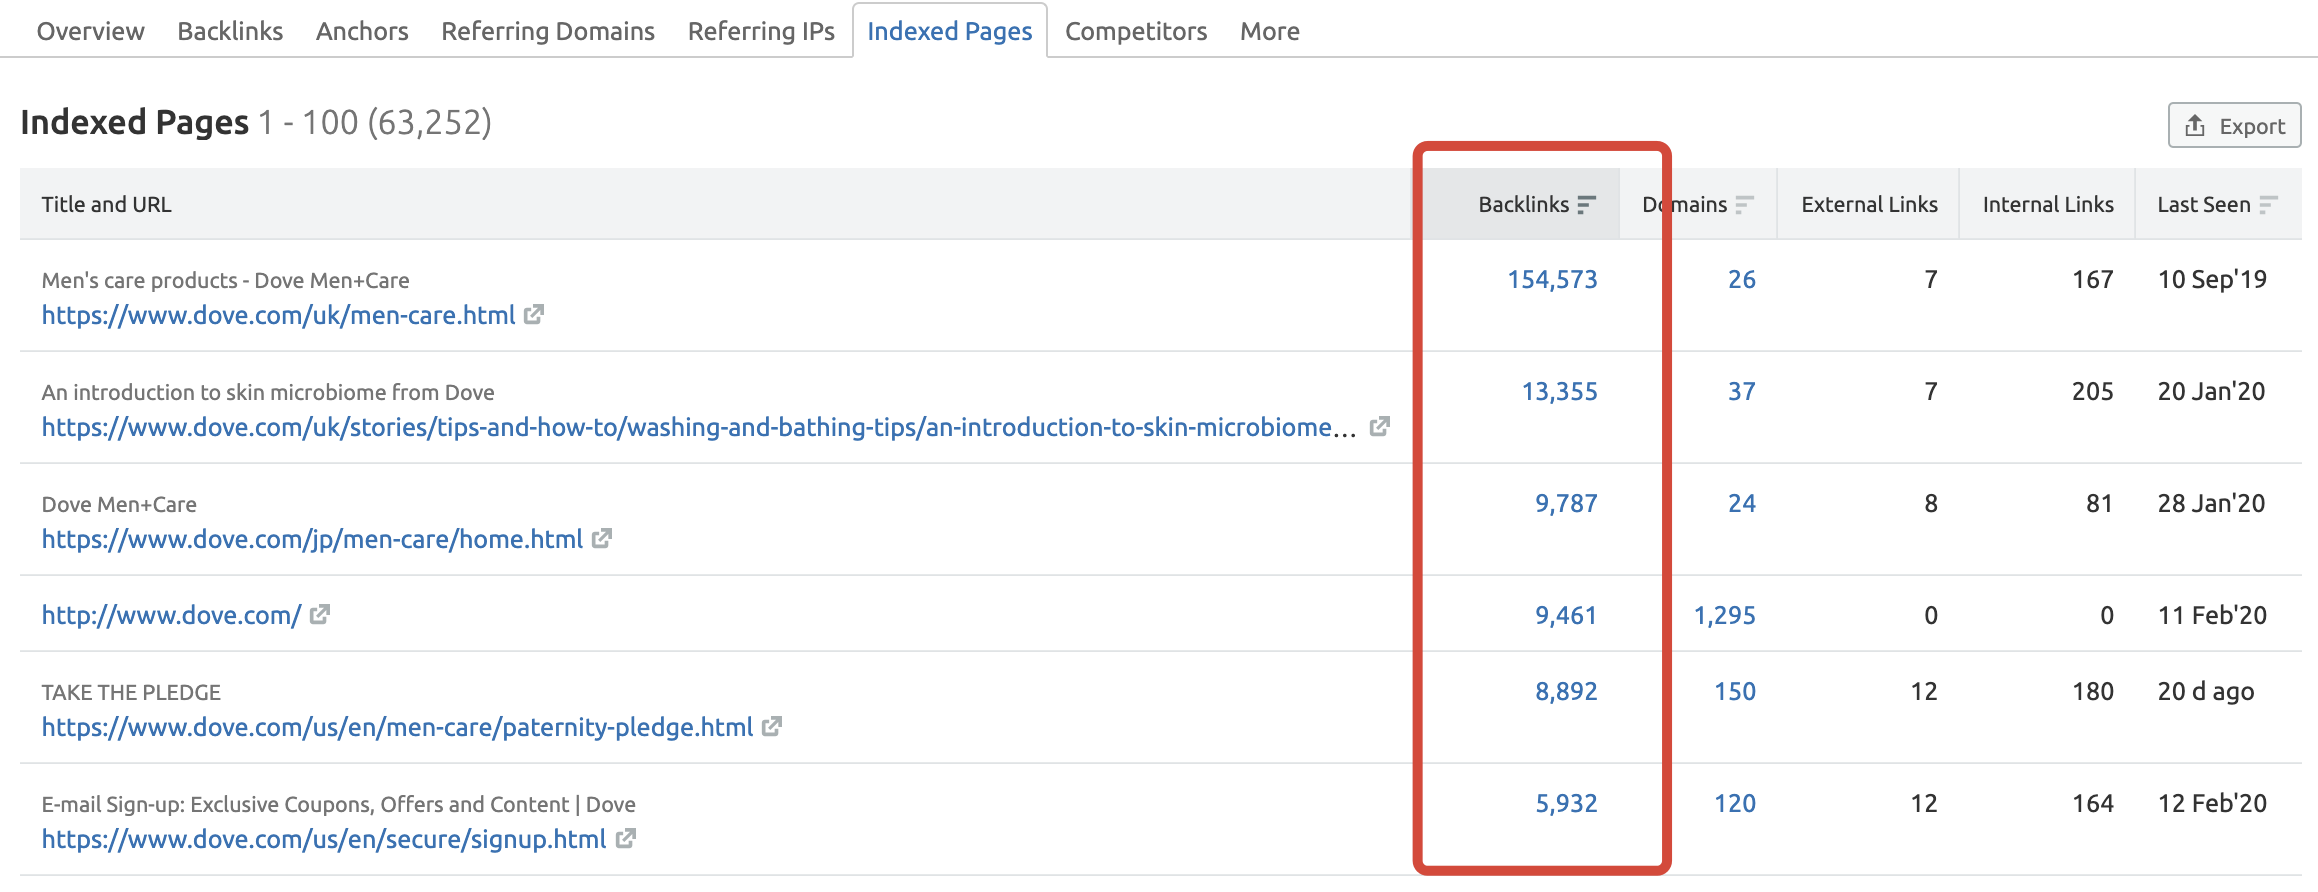 Competitor Analysis: Keywords and Backlinks 画像 16